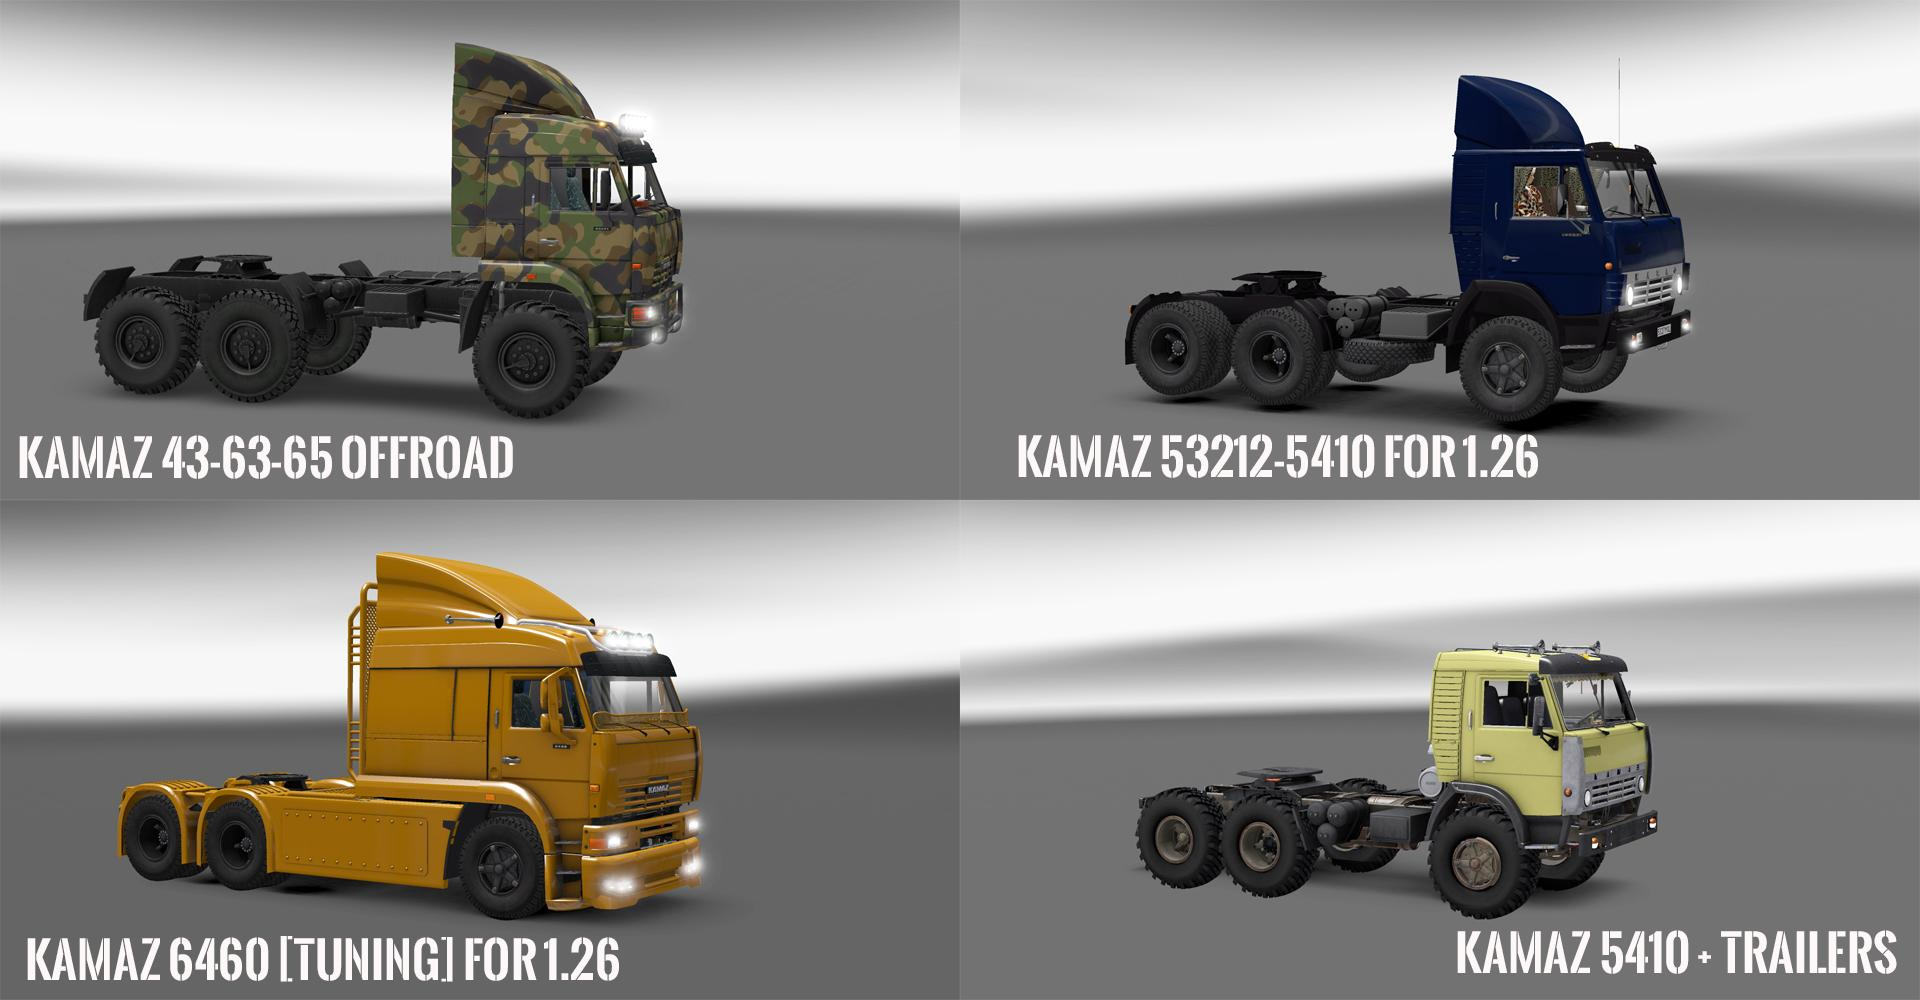 PACK 10.4 COMPT. TRUCKS WITH POWERFULL ENGINES